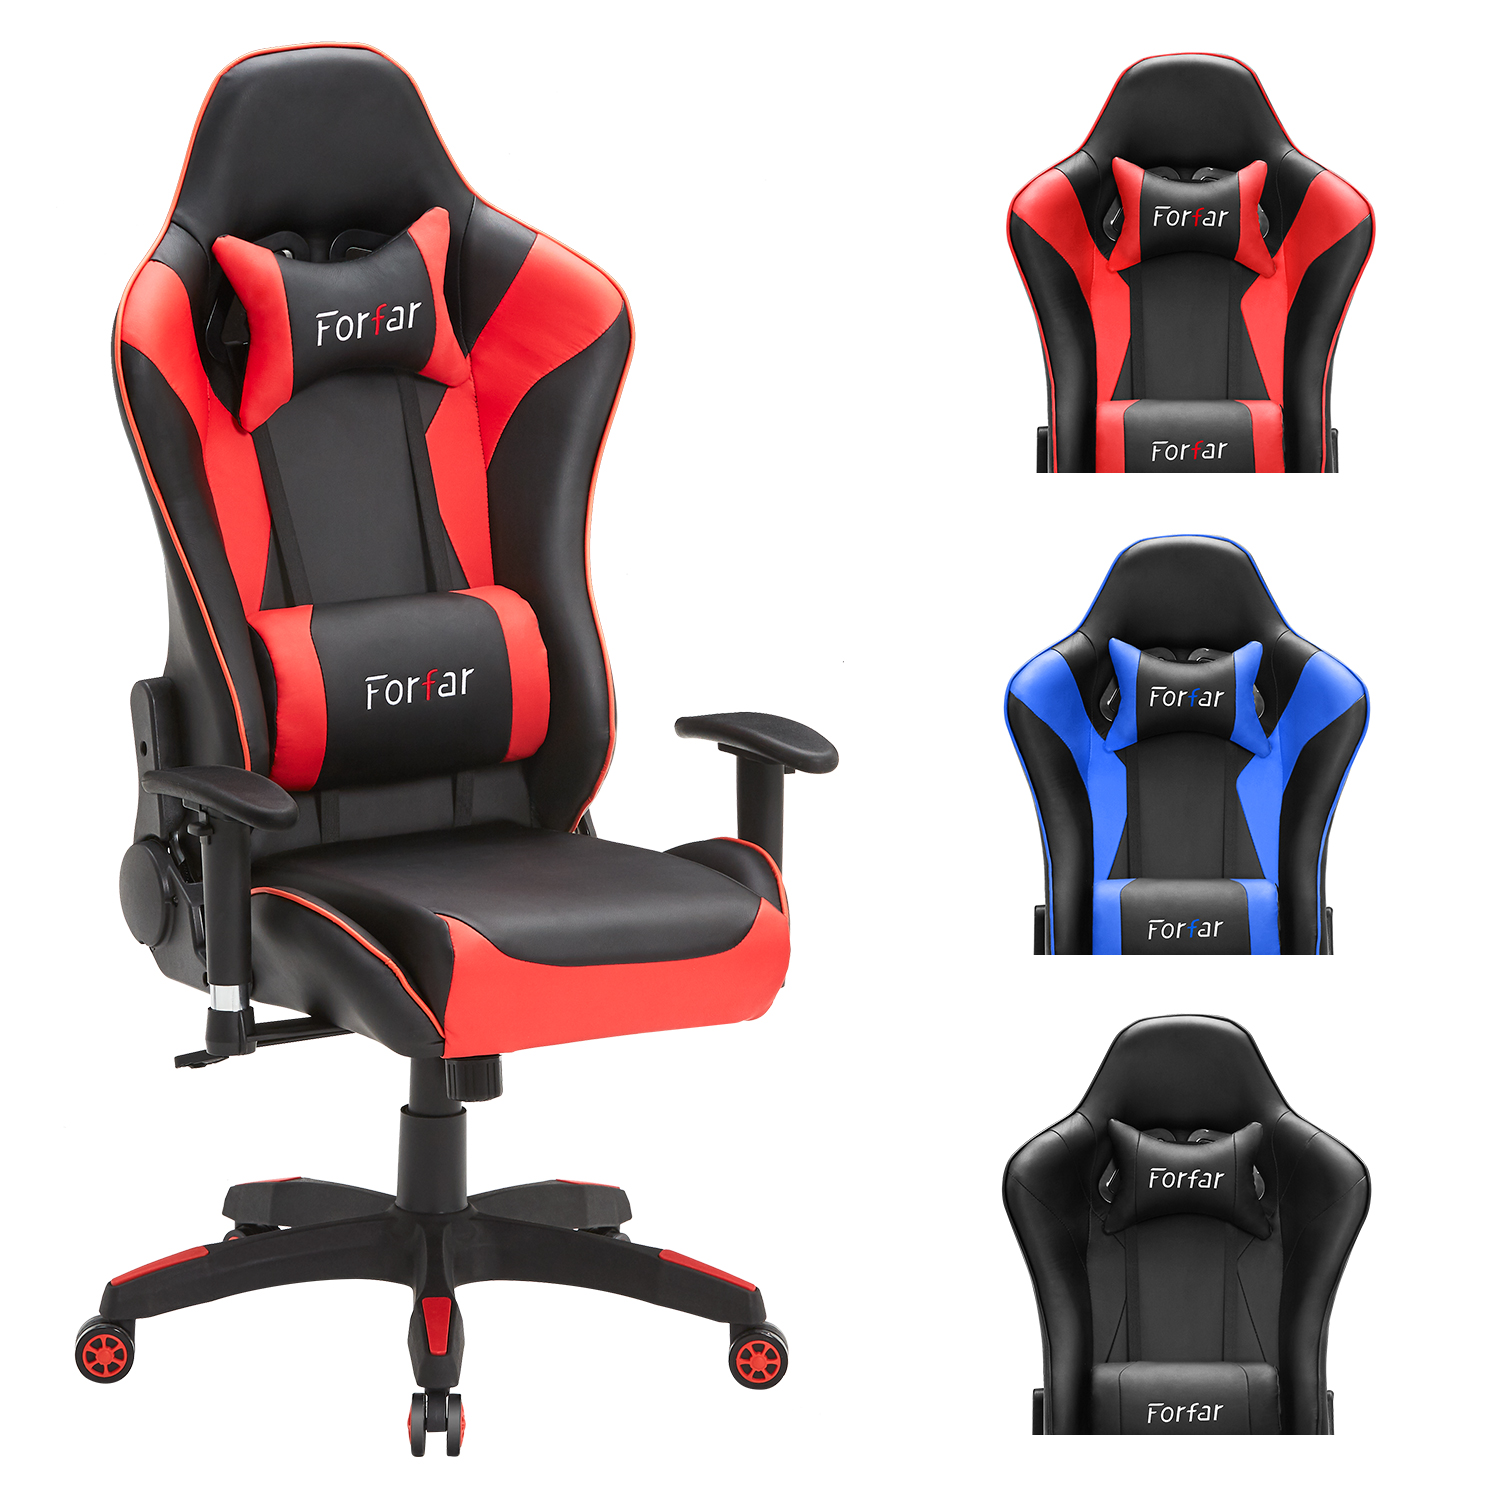 Computer Gaming Chair Racing Style PU Leather Swivel Ergonomic Office Chair Adjustable Height With Headrest And Lumbar Support